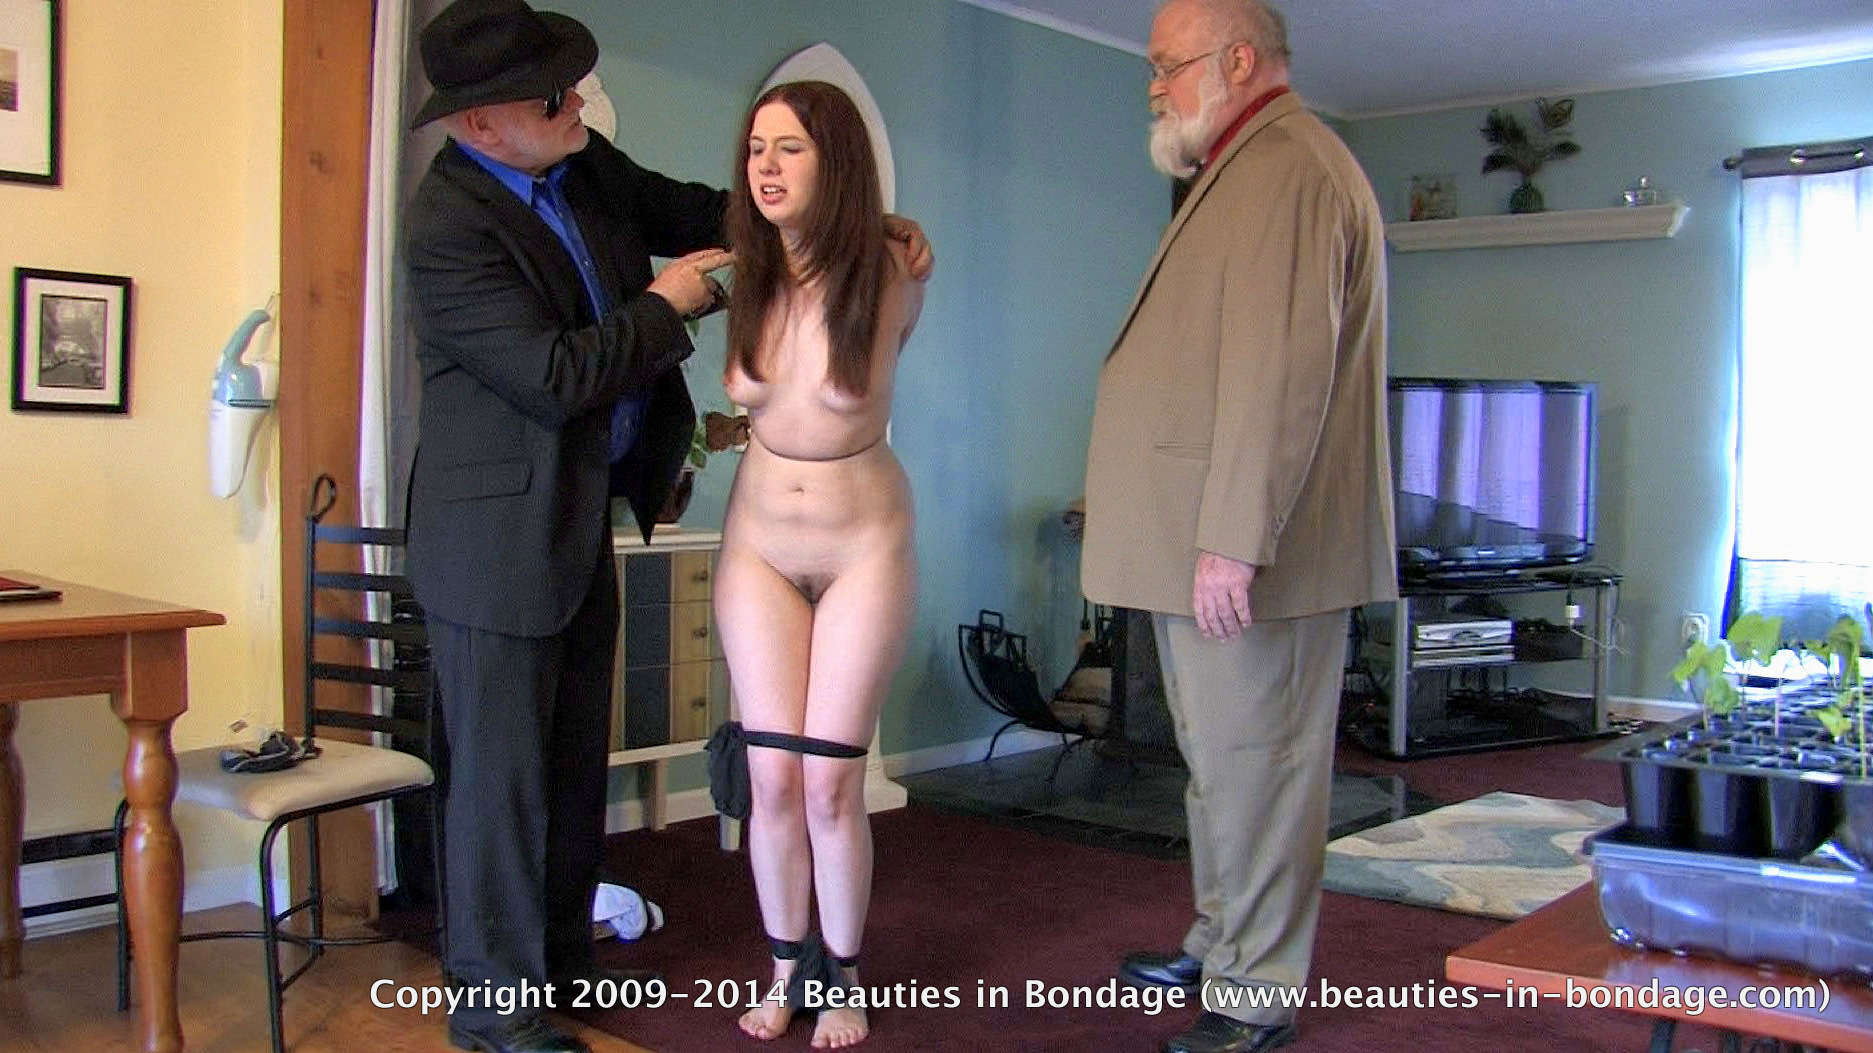 pantyhose stripped her bound her jpg 1500x1000